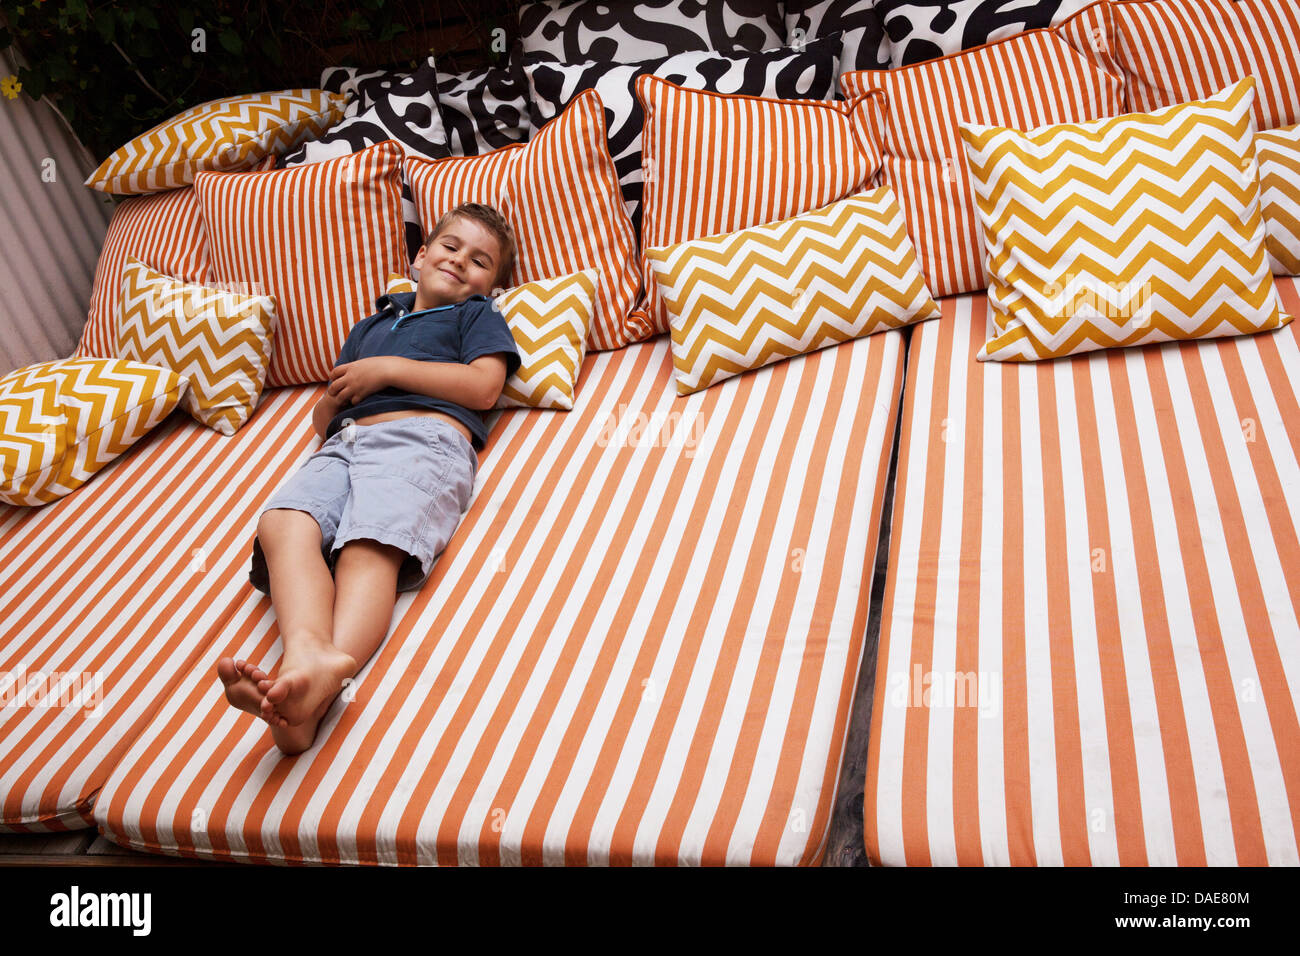 Boy Relaxing On Striped Outdoor Furniture With Cushions Stock Photo